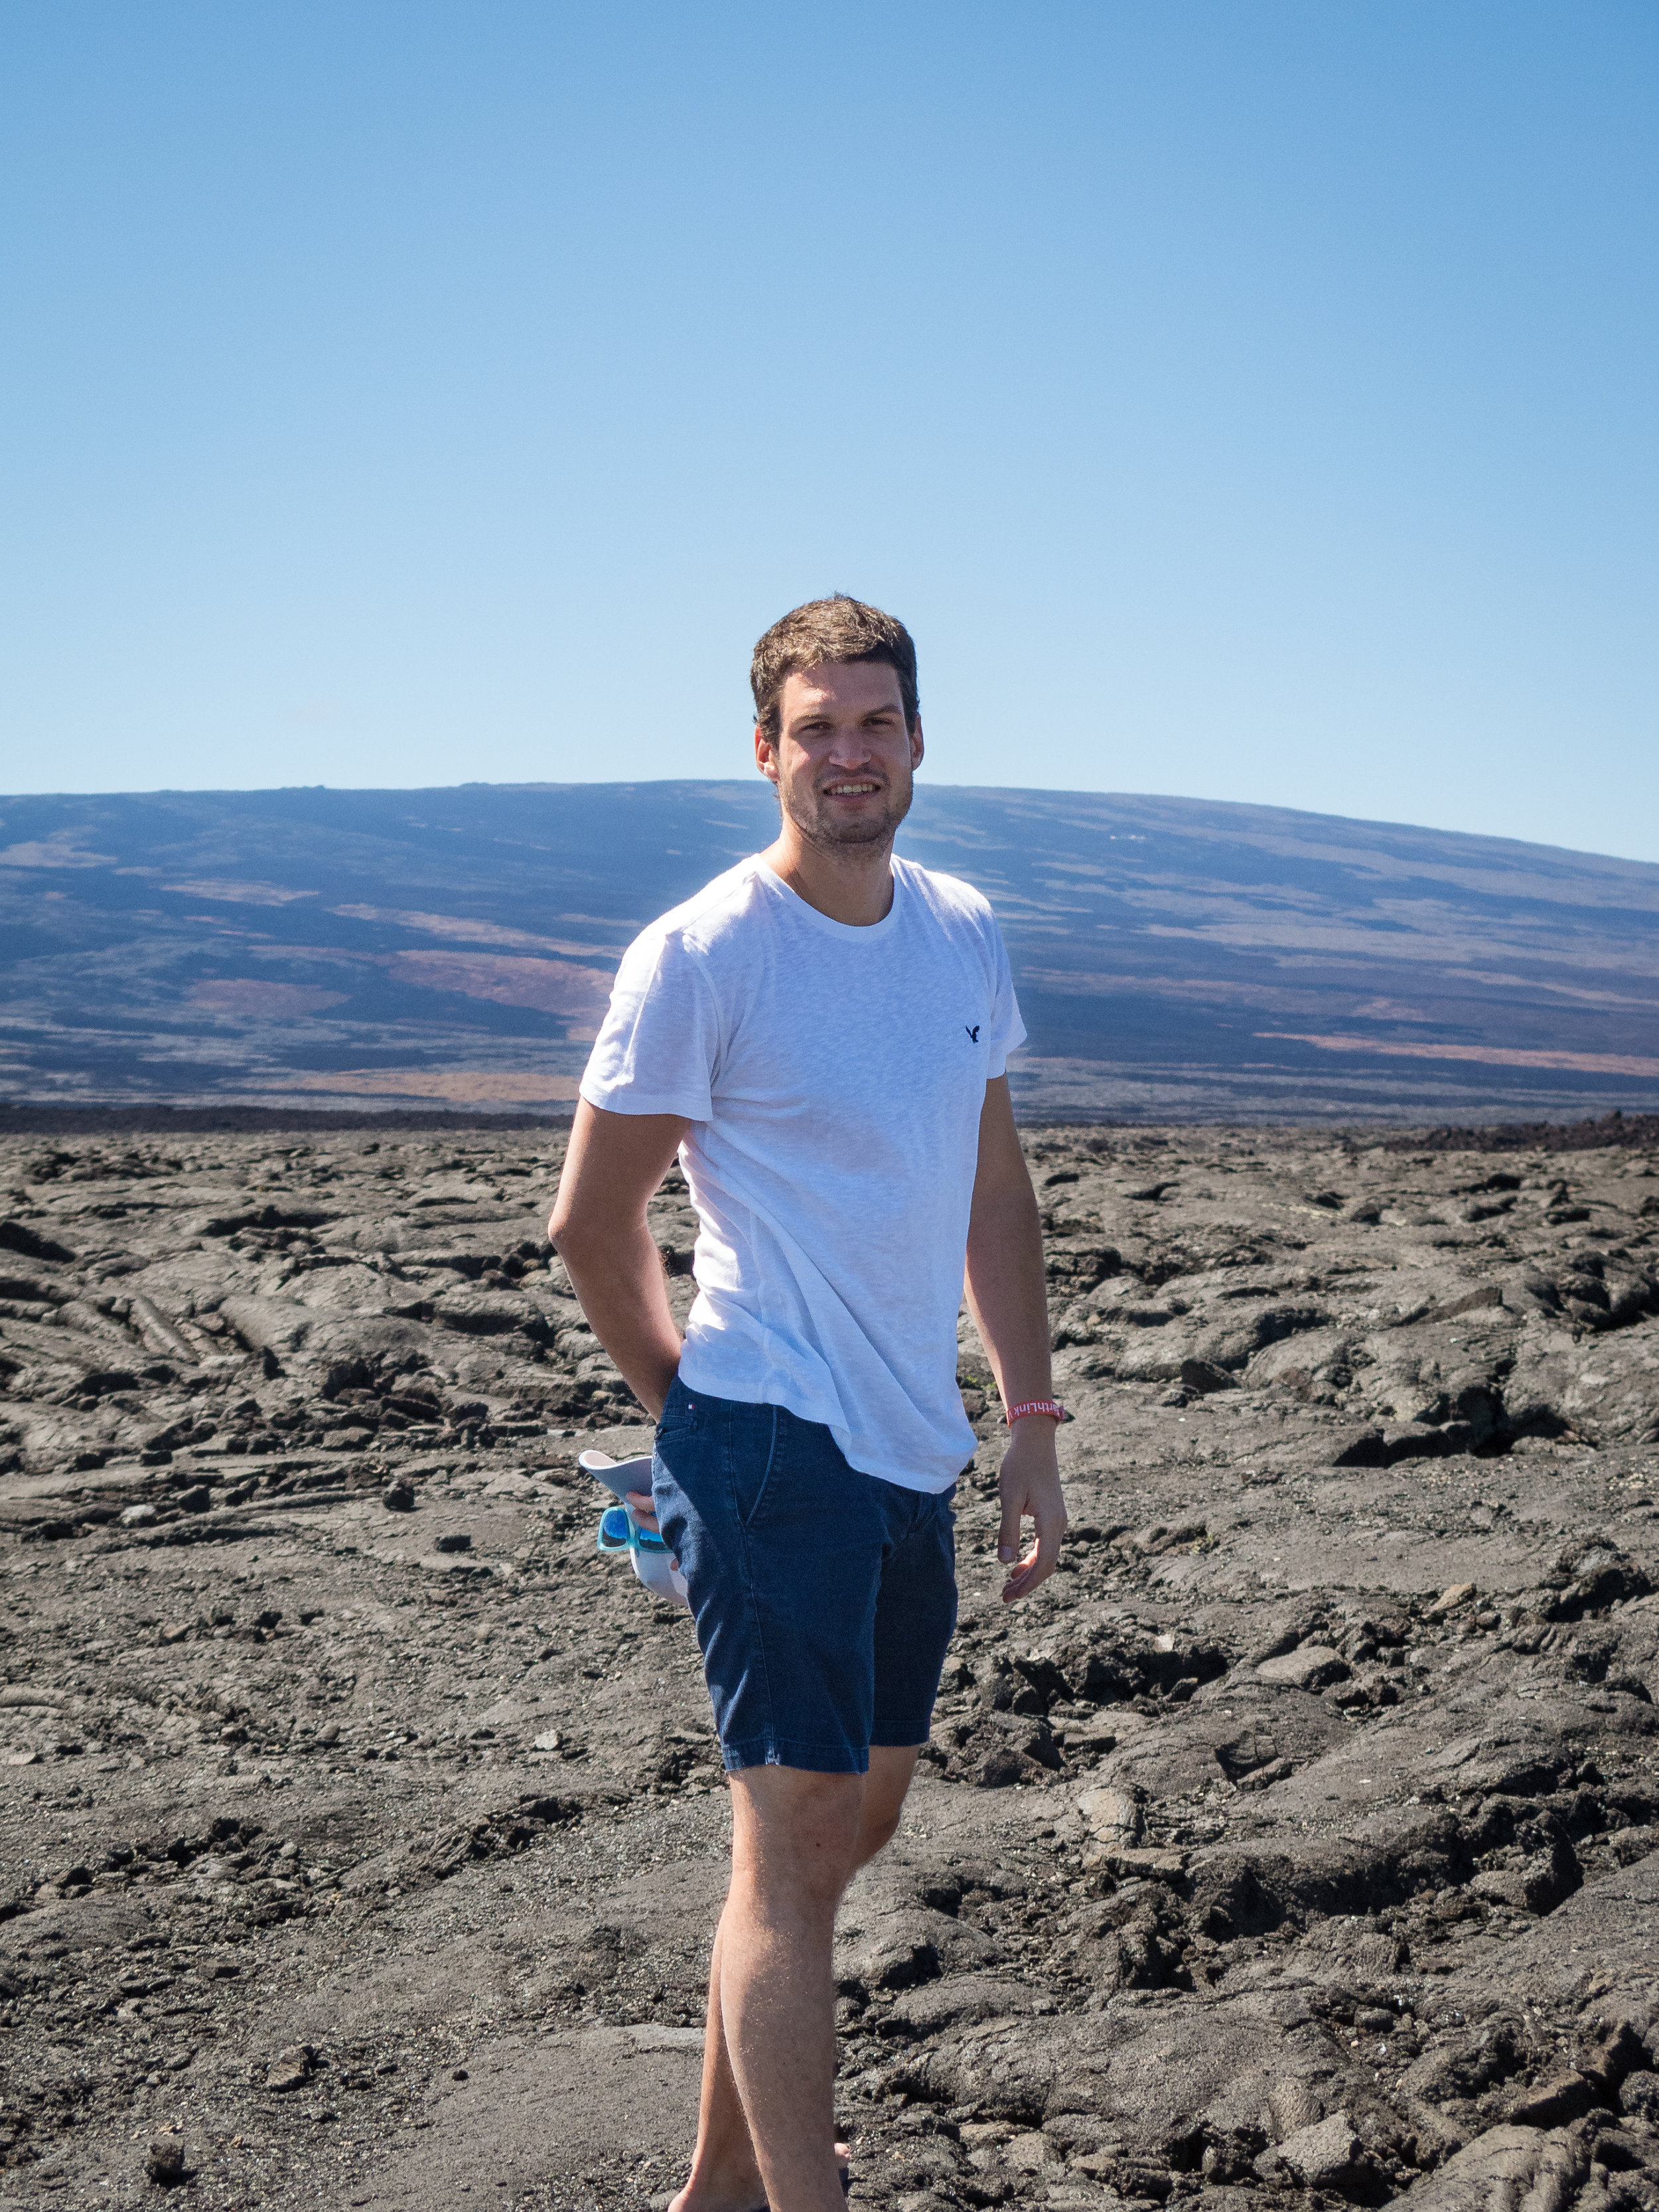 Sean Smith - Inspiring others to travel the planet and discover what our beautiful planet earth has to offer